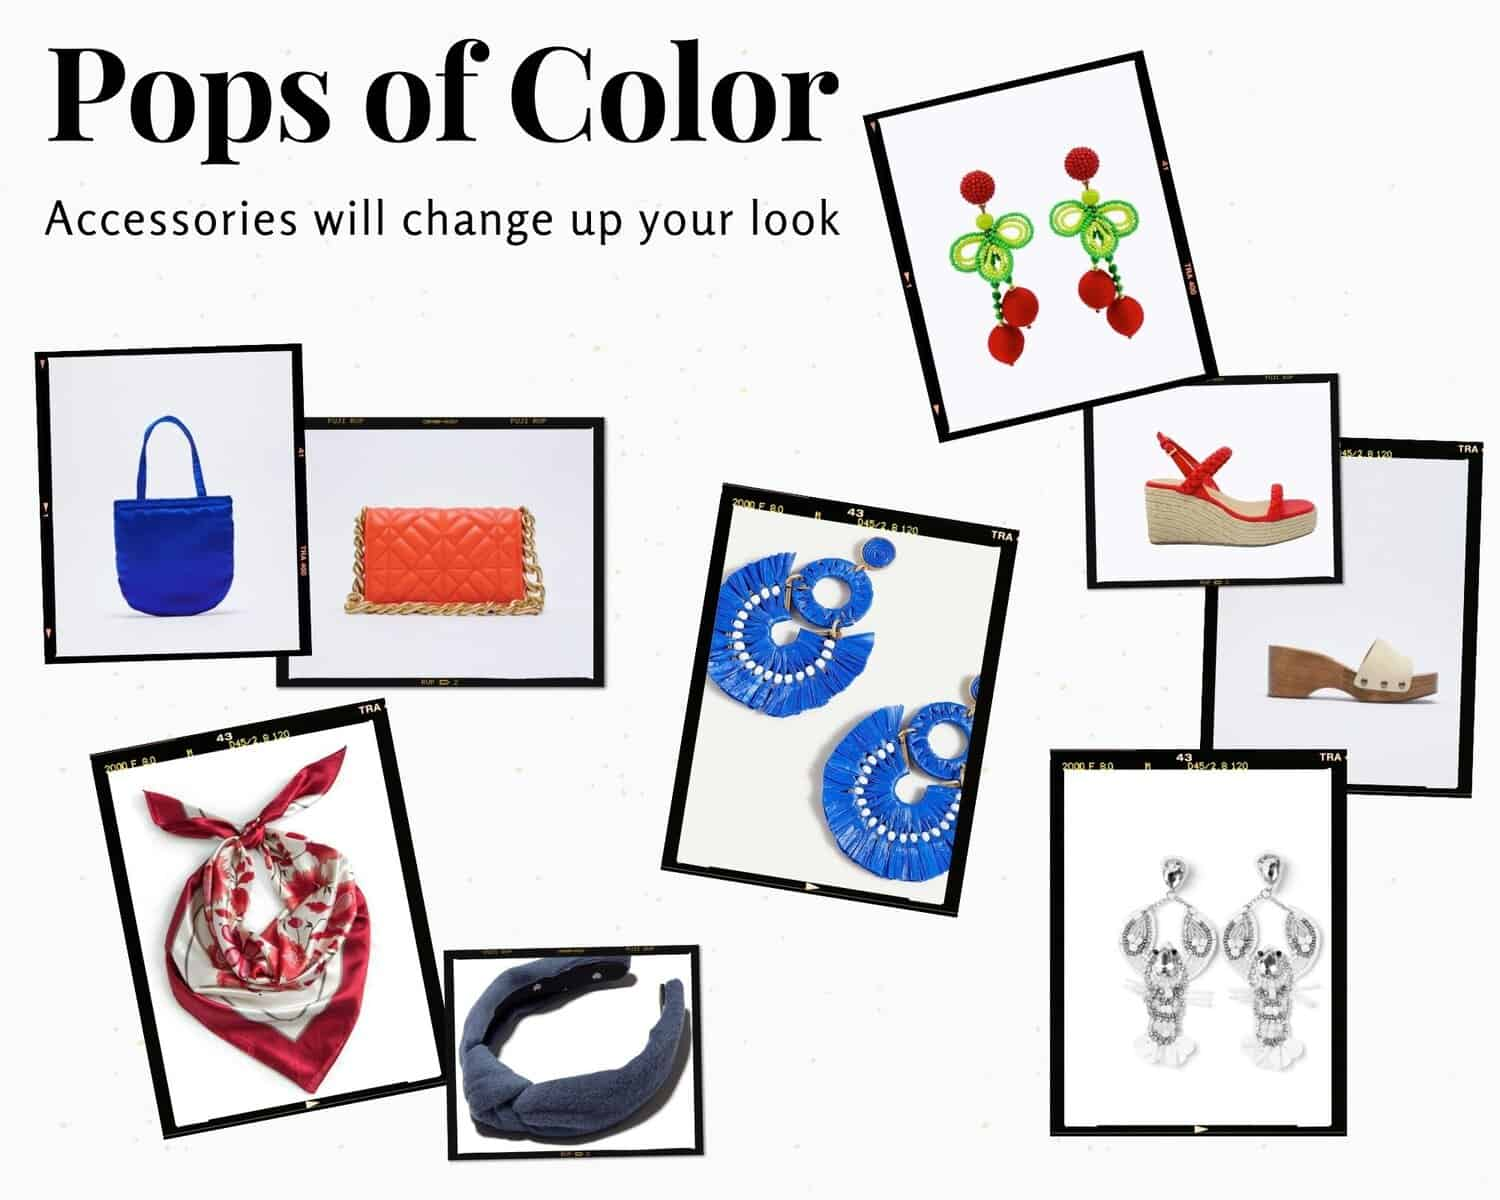 1)  Blue purse  2)  Red purse  3)  Cherry earrings  4)  Red scarf  5)  Blue headband  6)  Blue earrings  7)  Red sandals  8)  White slides  9)  White lobster earrings